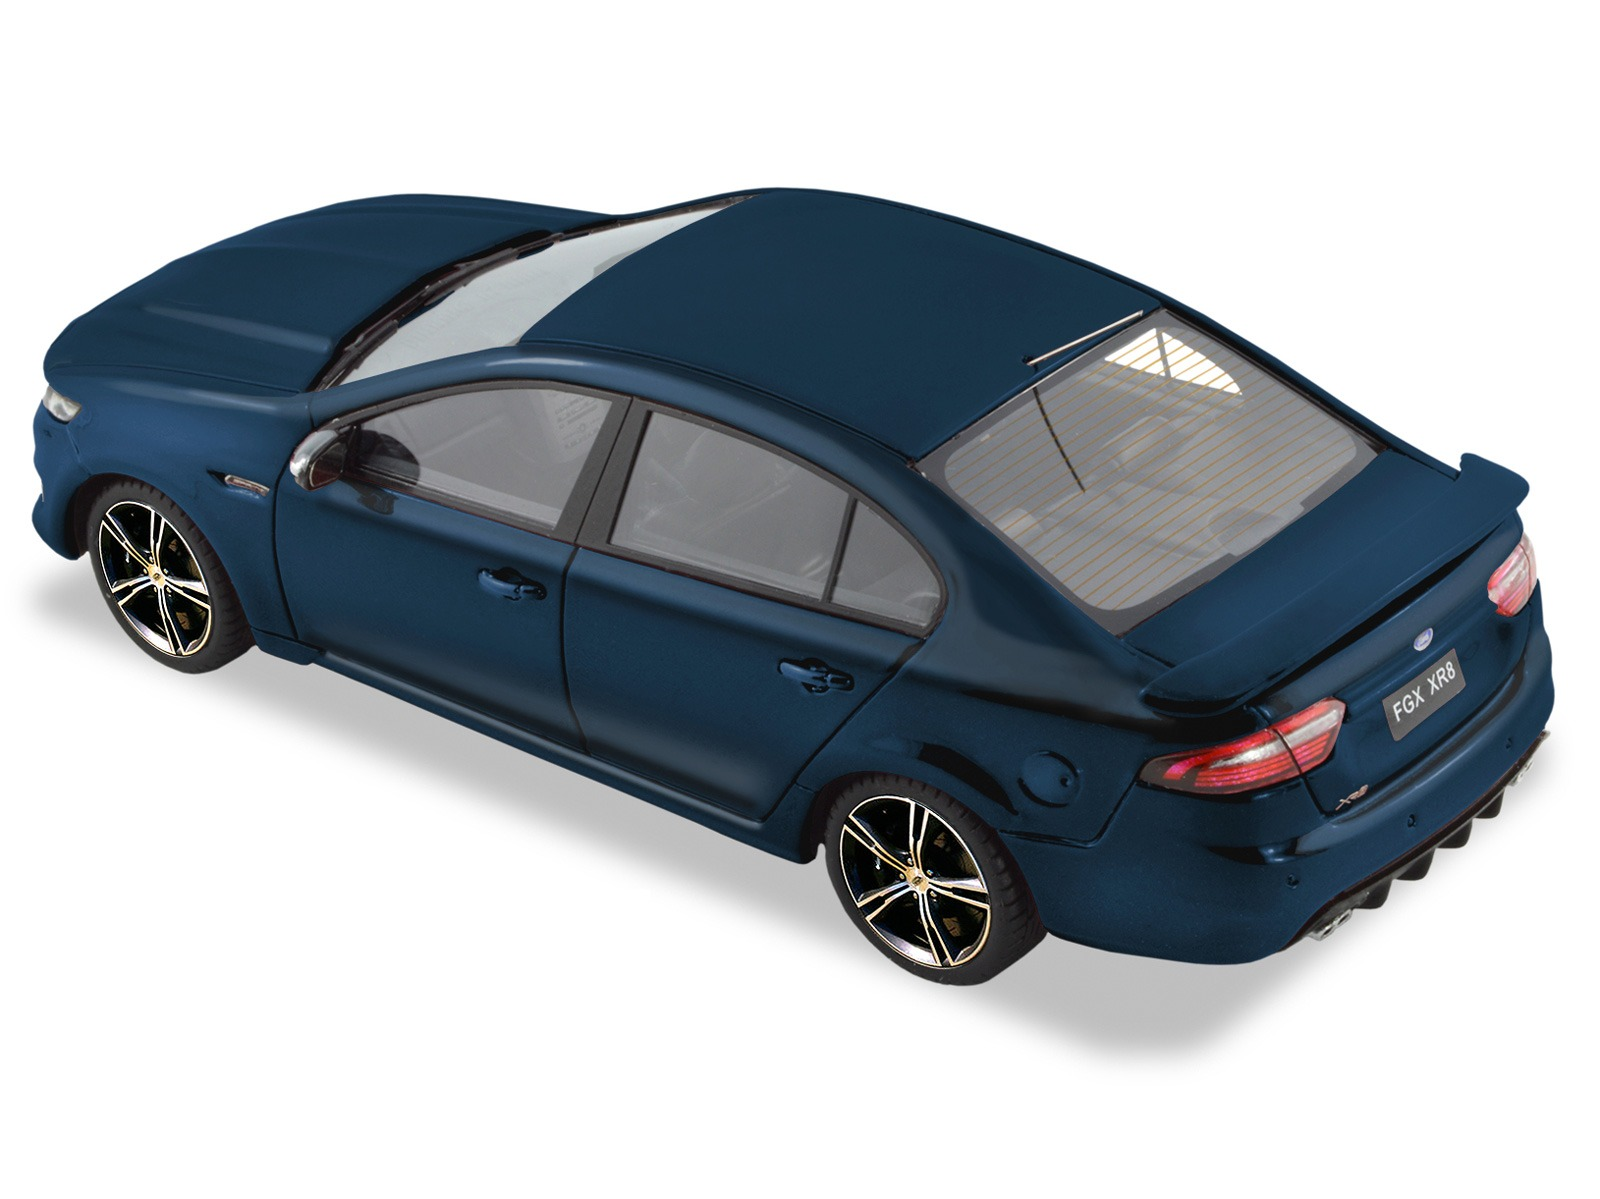 Ford FGX XR8 – Vanish (Blue)